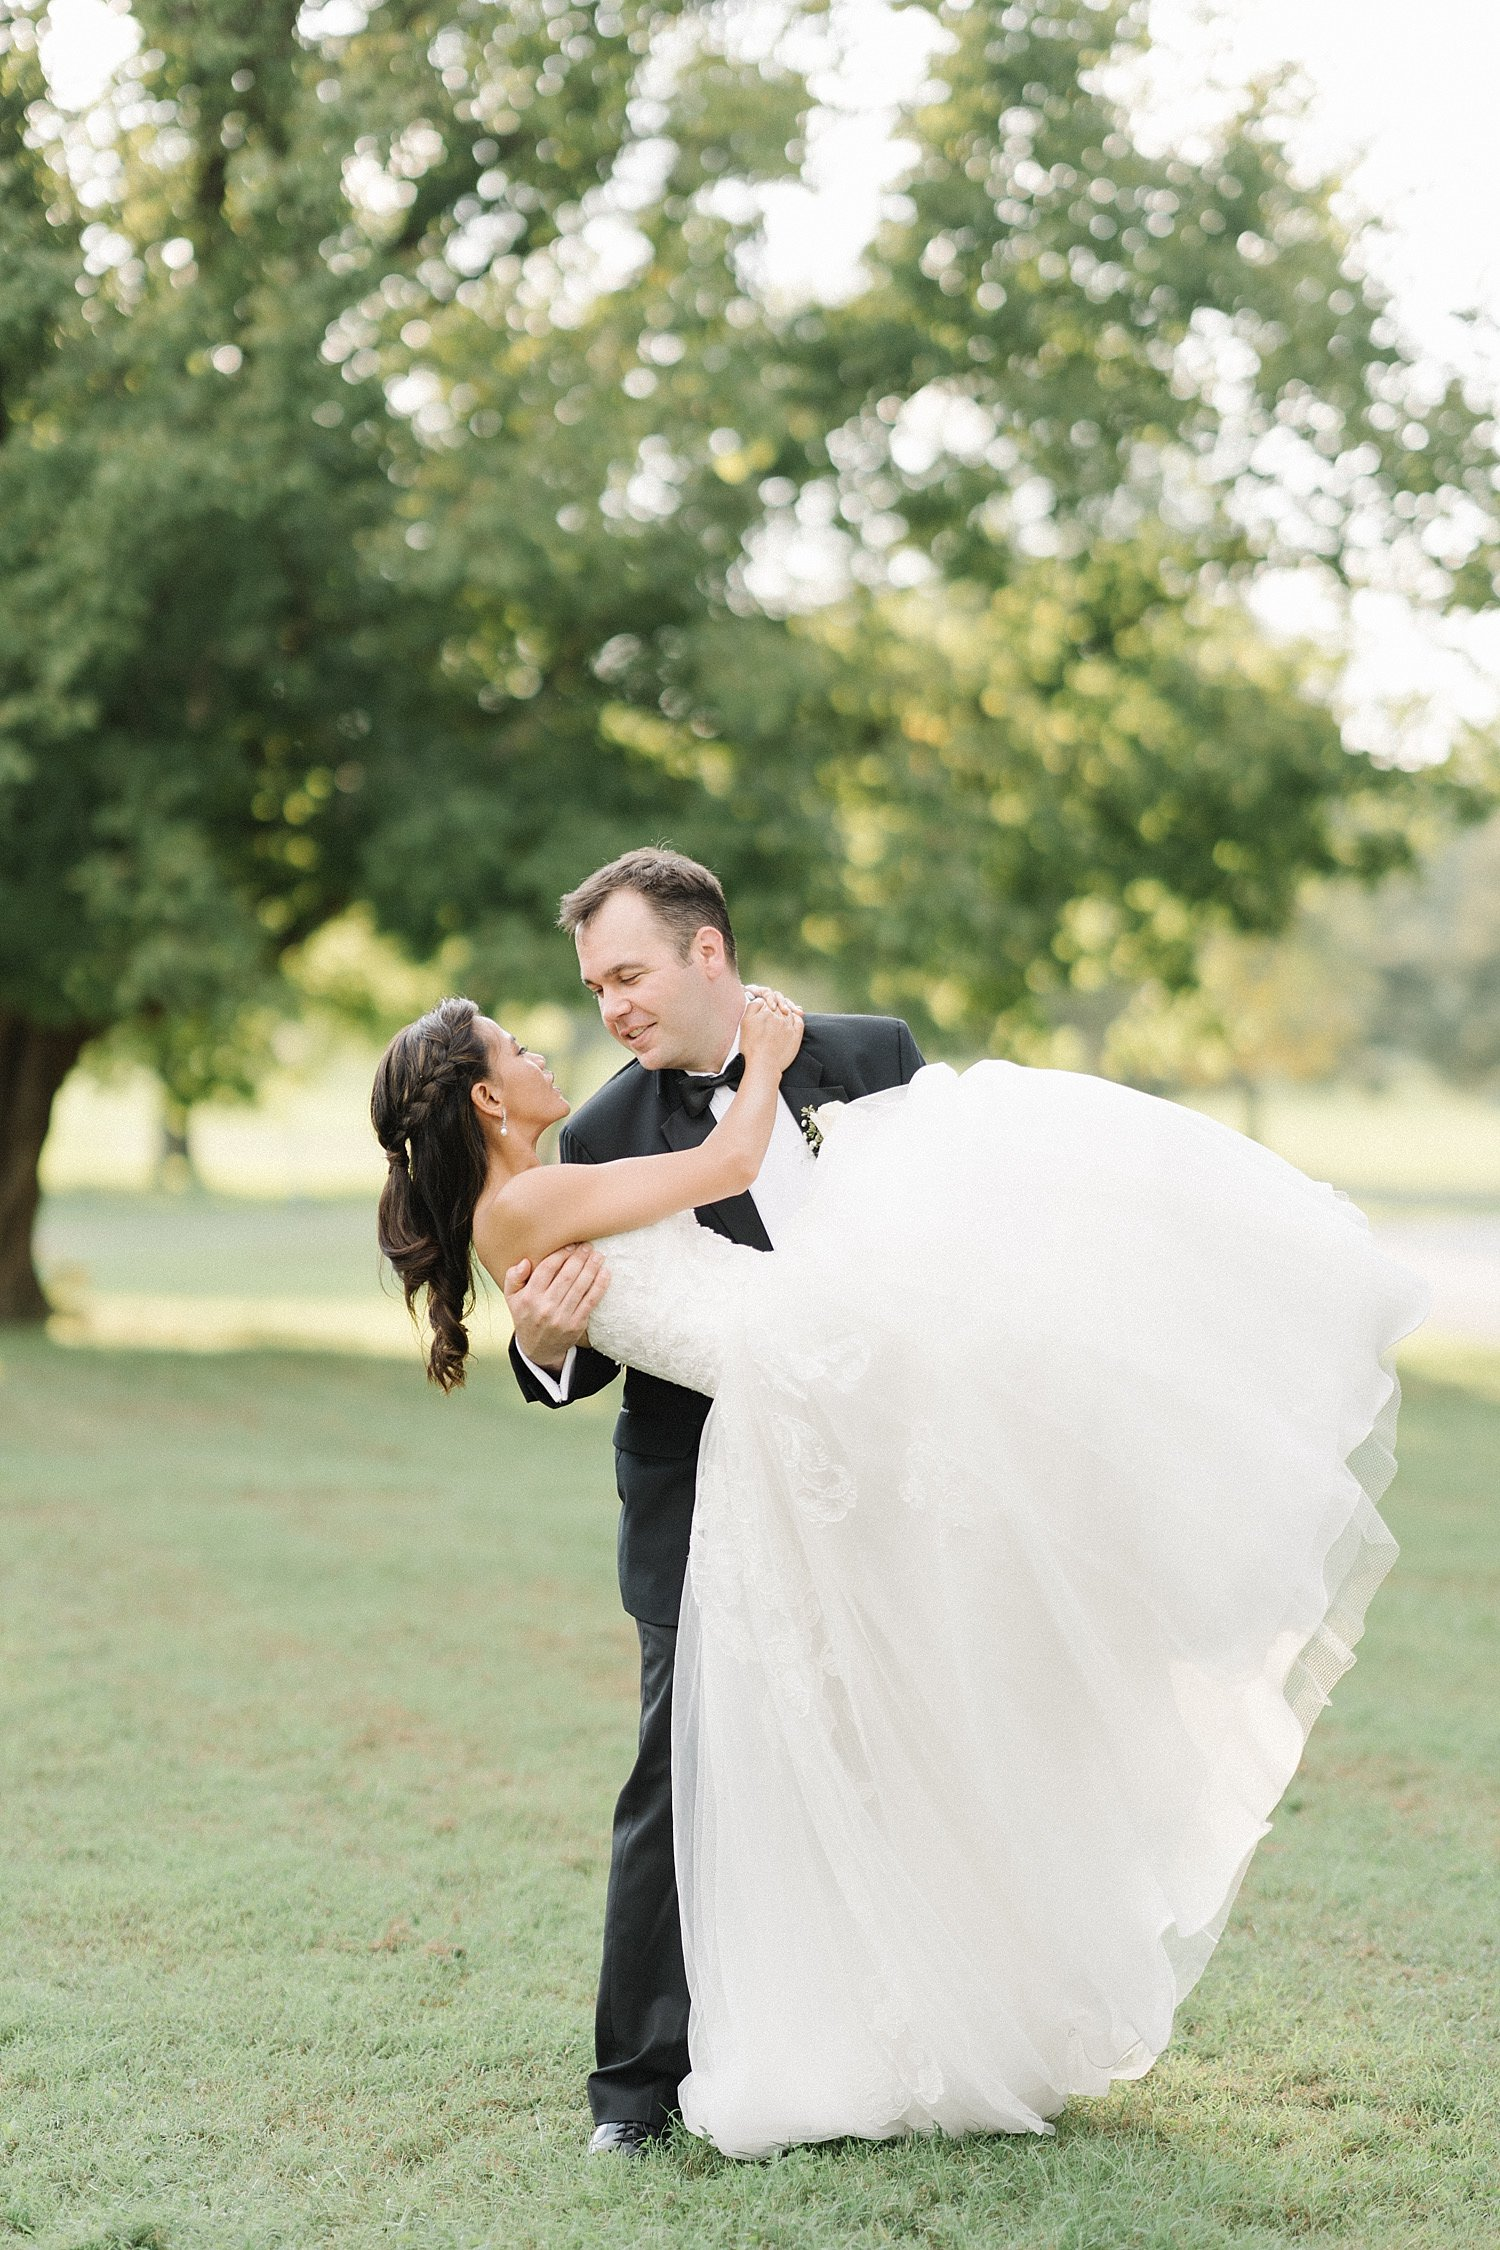 woodlandsatalgonkian-wedding-winniedoraphotography_0040